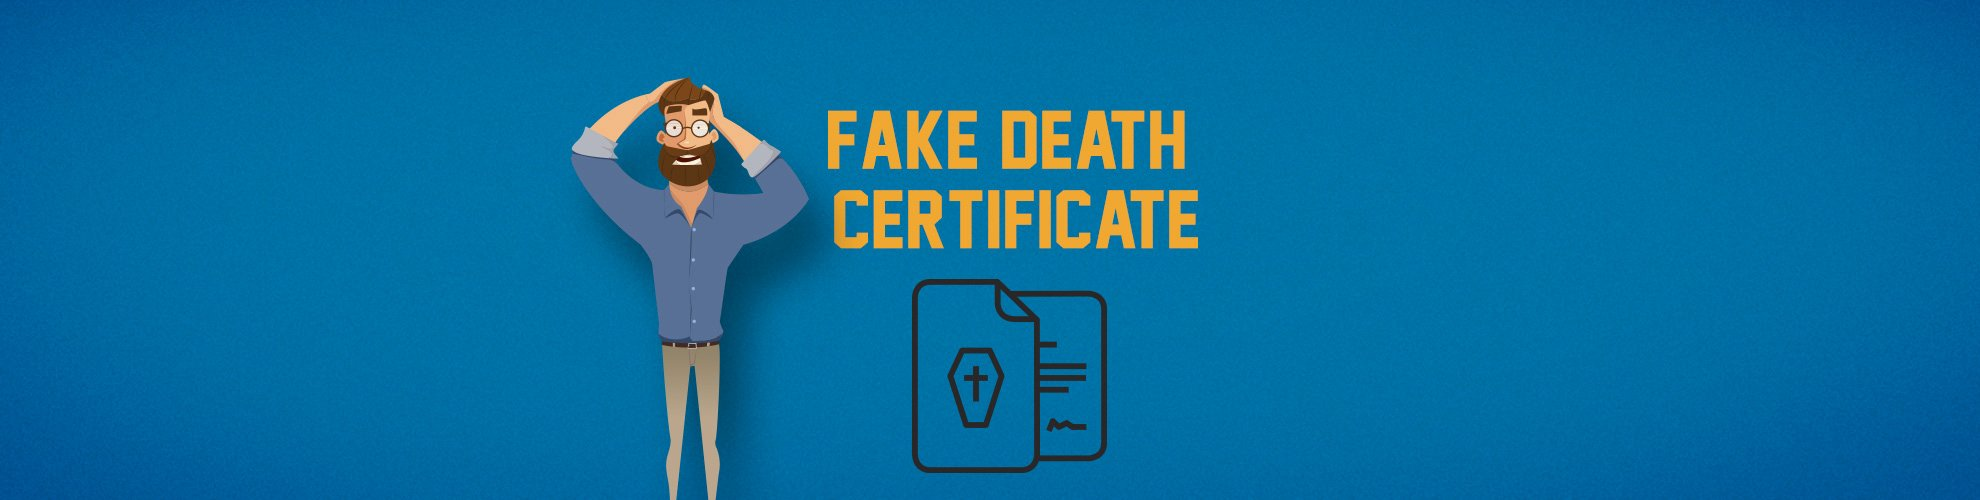 Fake Death Certificate for Work Unique Buy Fake Death Certificates Line Novelty Death